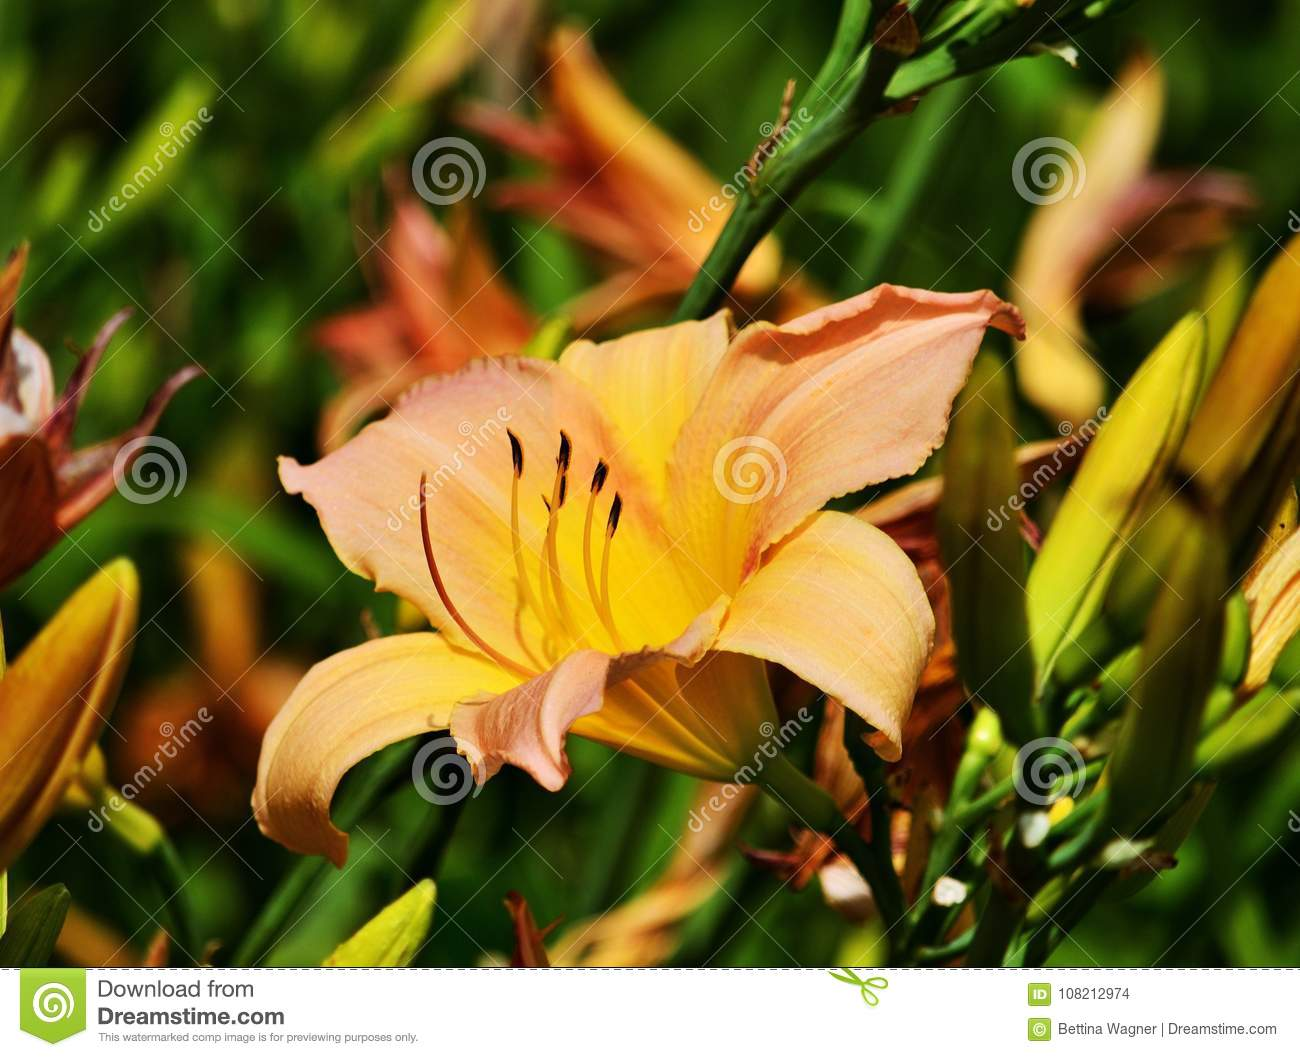 17c24d709662d Fire lilly in the garden stock photo. Image of yellow - 108212974